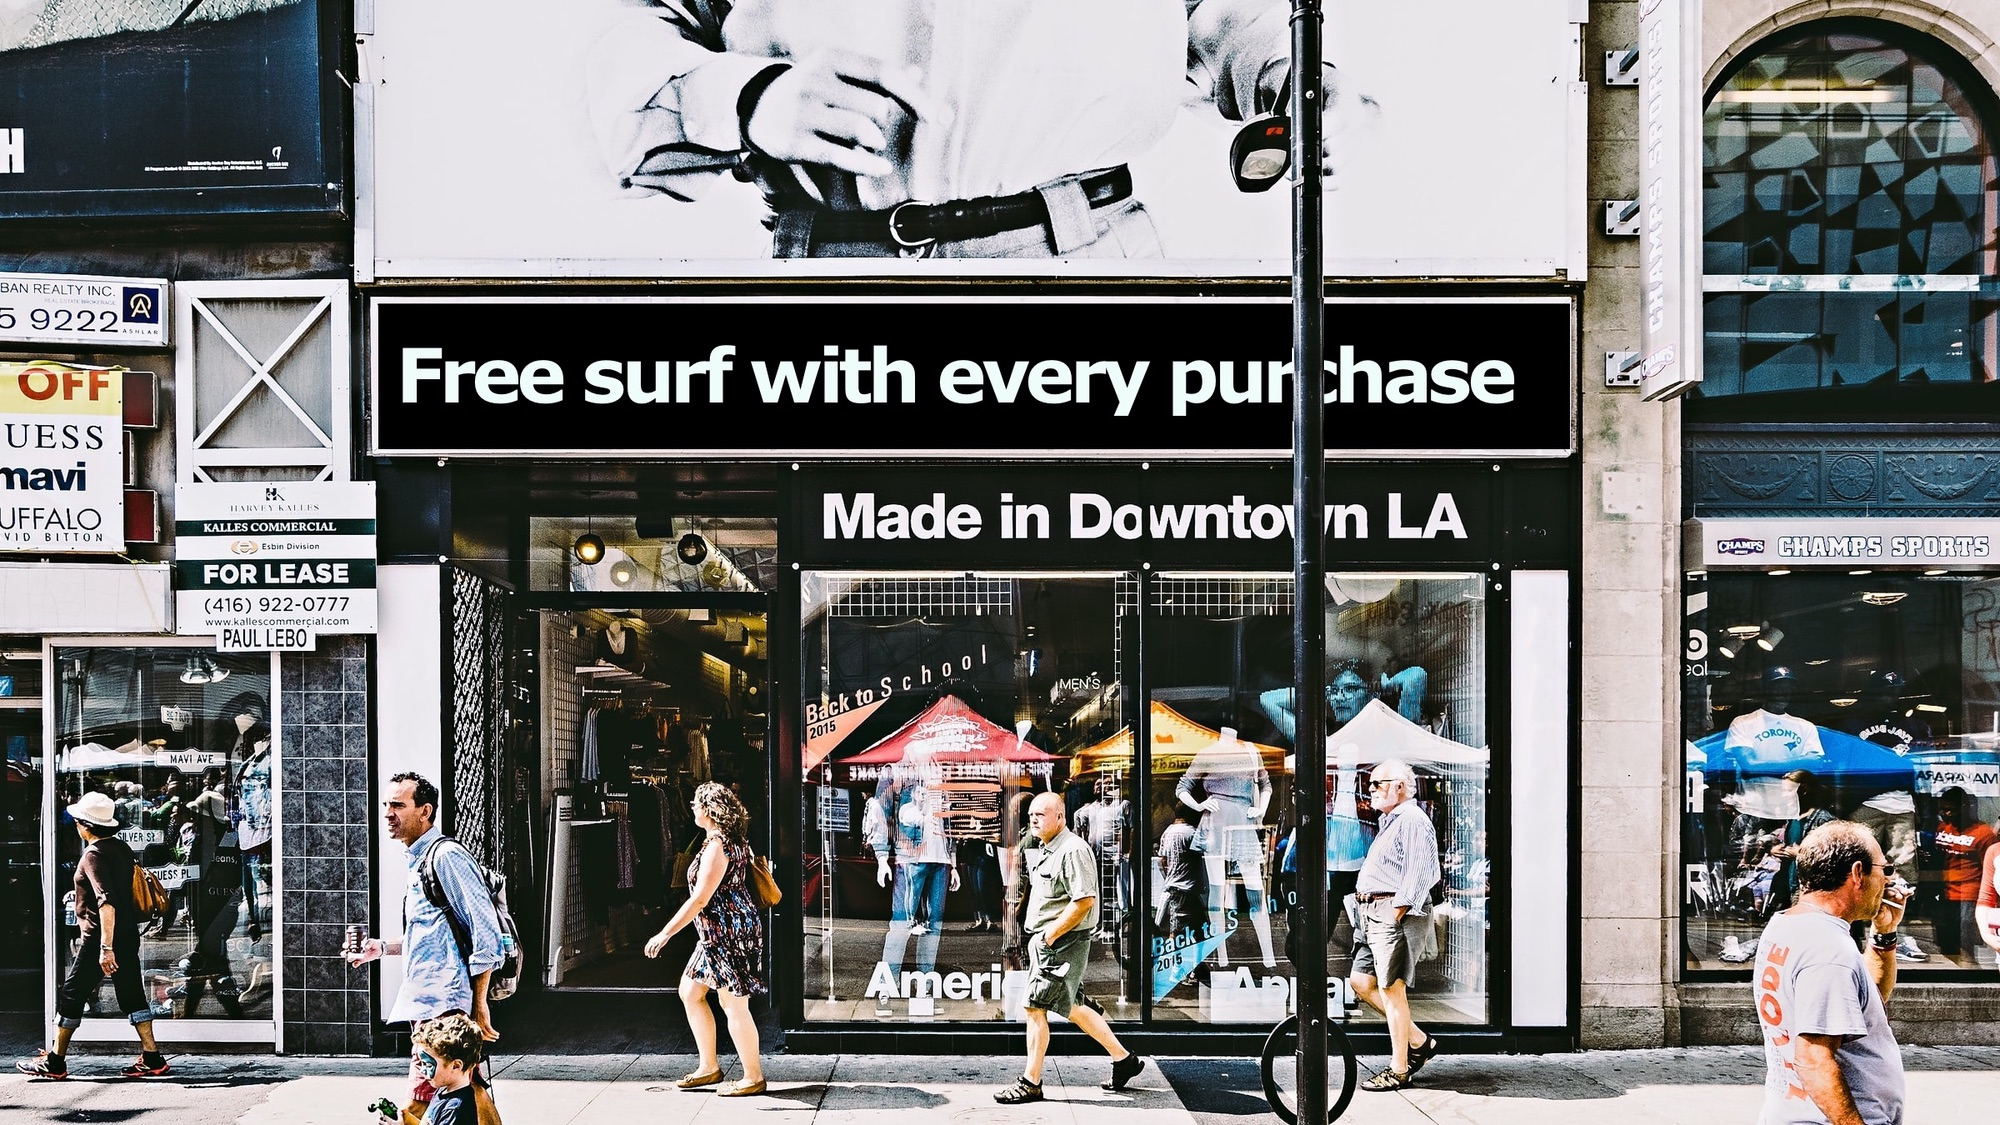 Free surf with every purchase